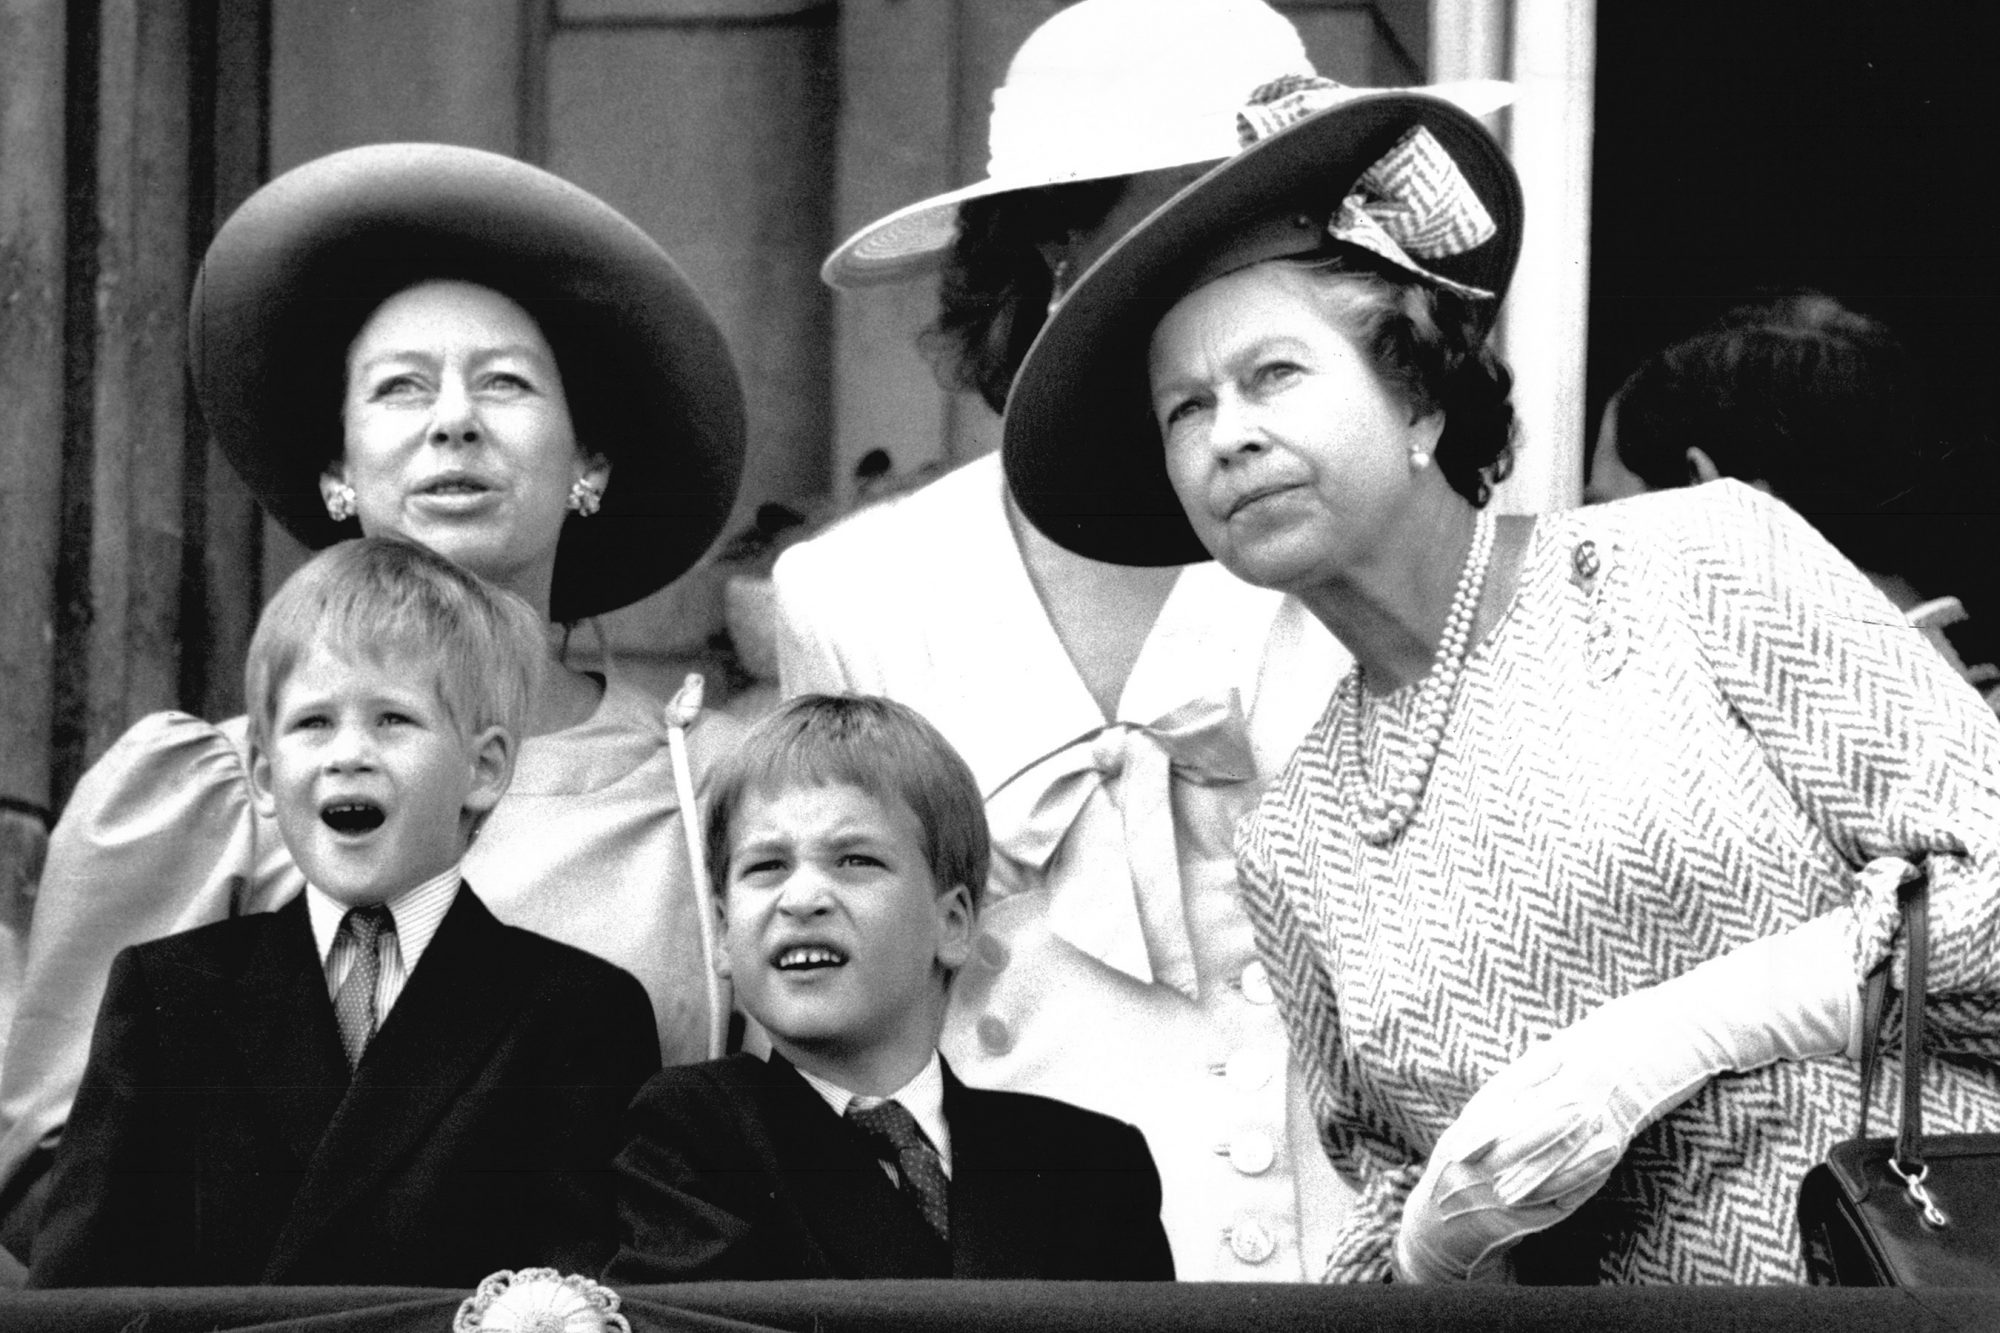 Trooping The Colour 1989. Queen Elizabeth Ii Princess Margaret Prince William And Prince Harry On Balcony At Buckingham Palace.